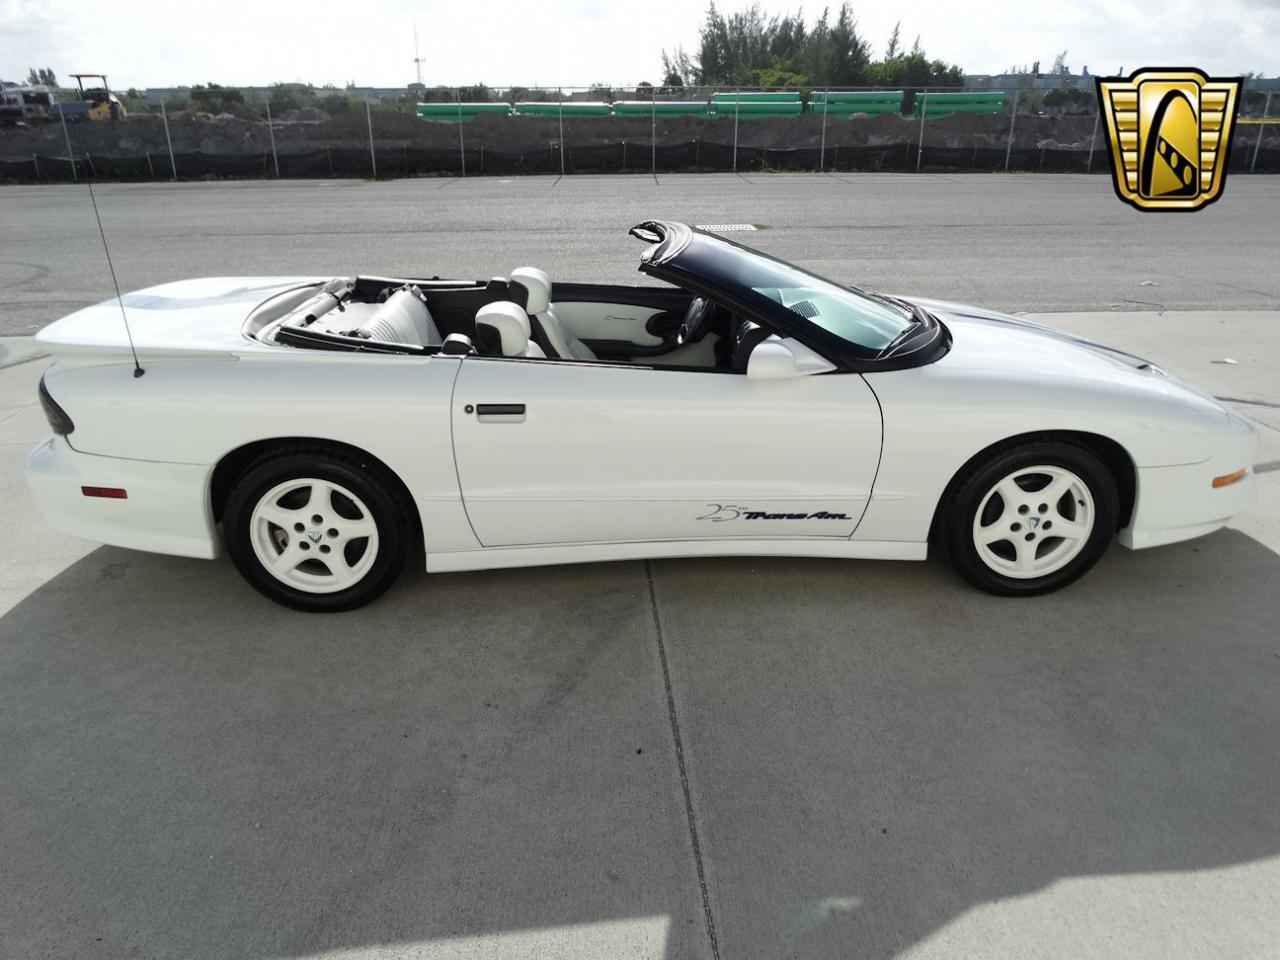 Large Picture of '94 Pontiac Firebird located in Florida - $22,595.00 Offered by Gateway Classic Cars - Fort Lauderdale - KXRF